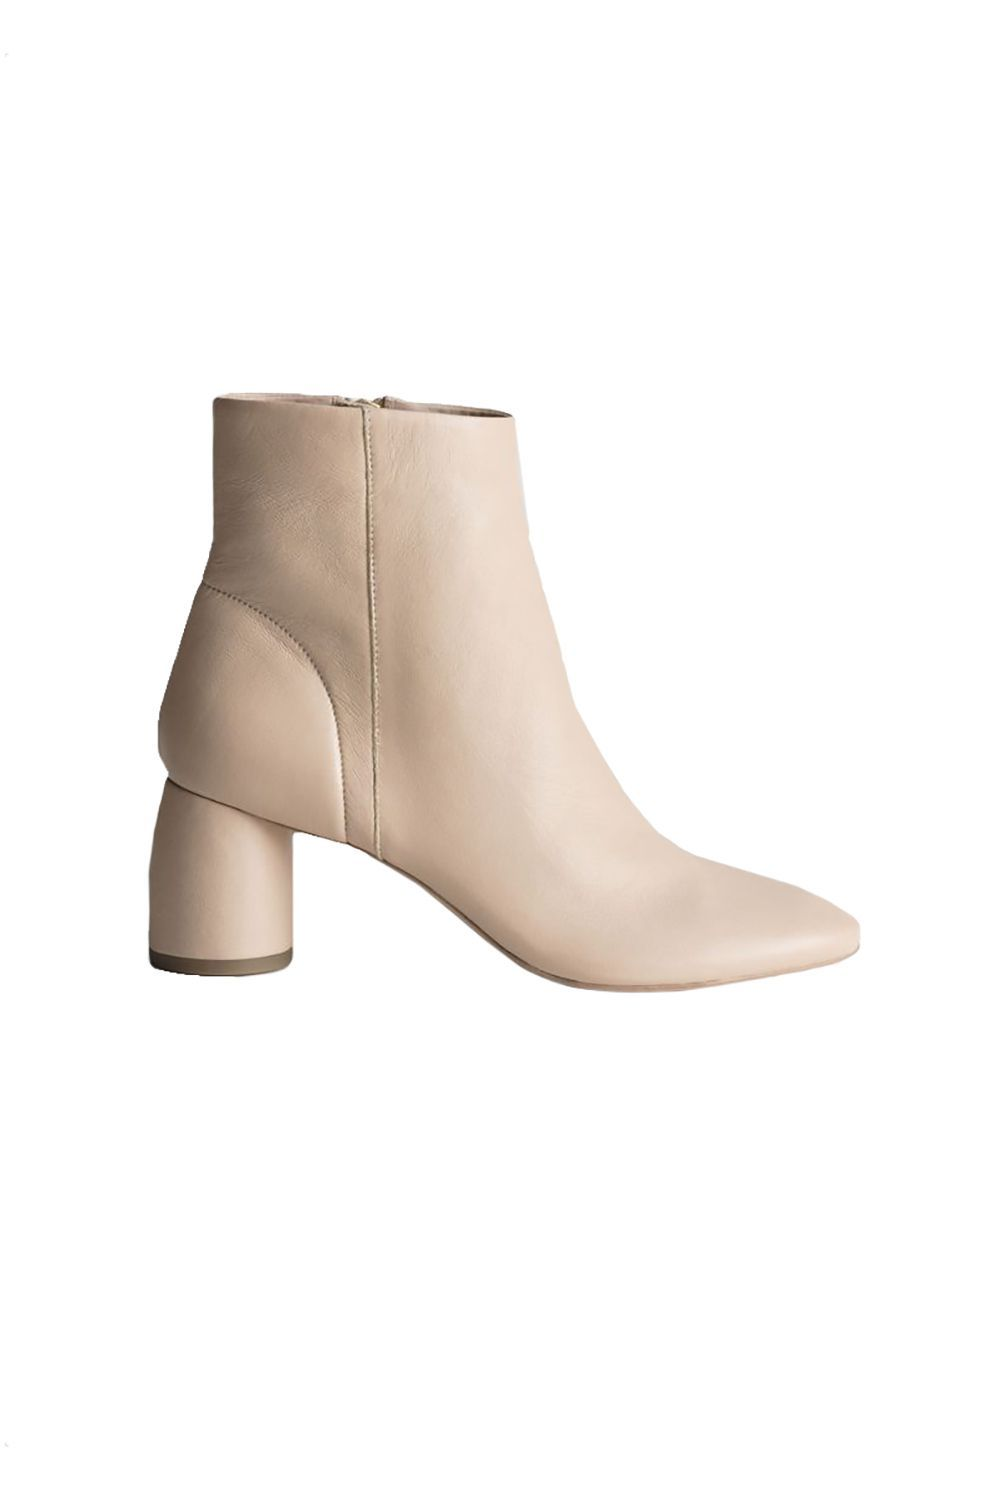 Beige Booties & Other Stories stories.com $179.00 SHOP IT Add something clean and minimal to balance out this season's animal print and logo-mania trends. Nimble and versatile, these two-inch boots from & Other Stories have a neutral palette and modern feel that looks good with a floral dress.